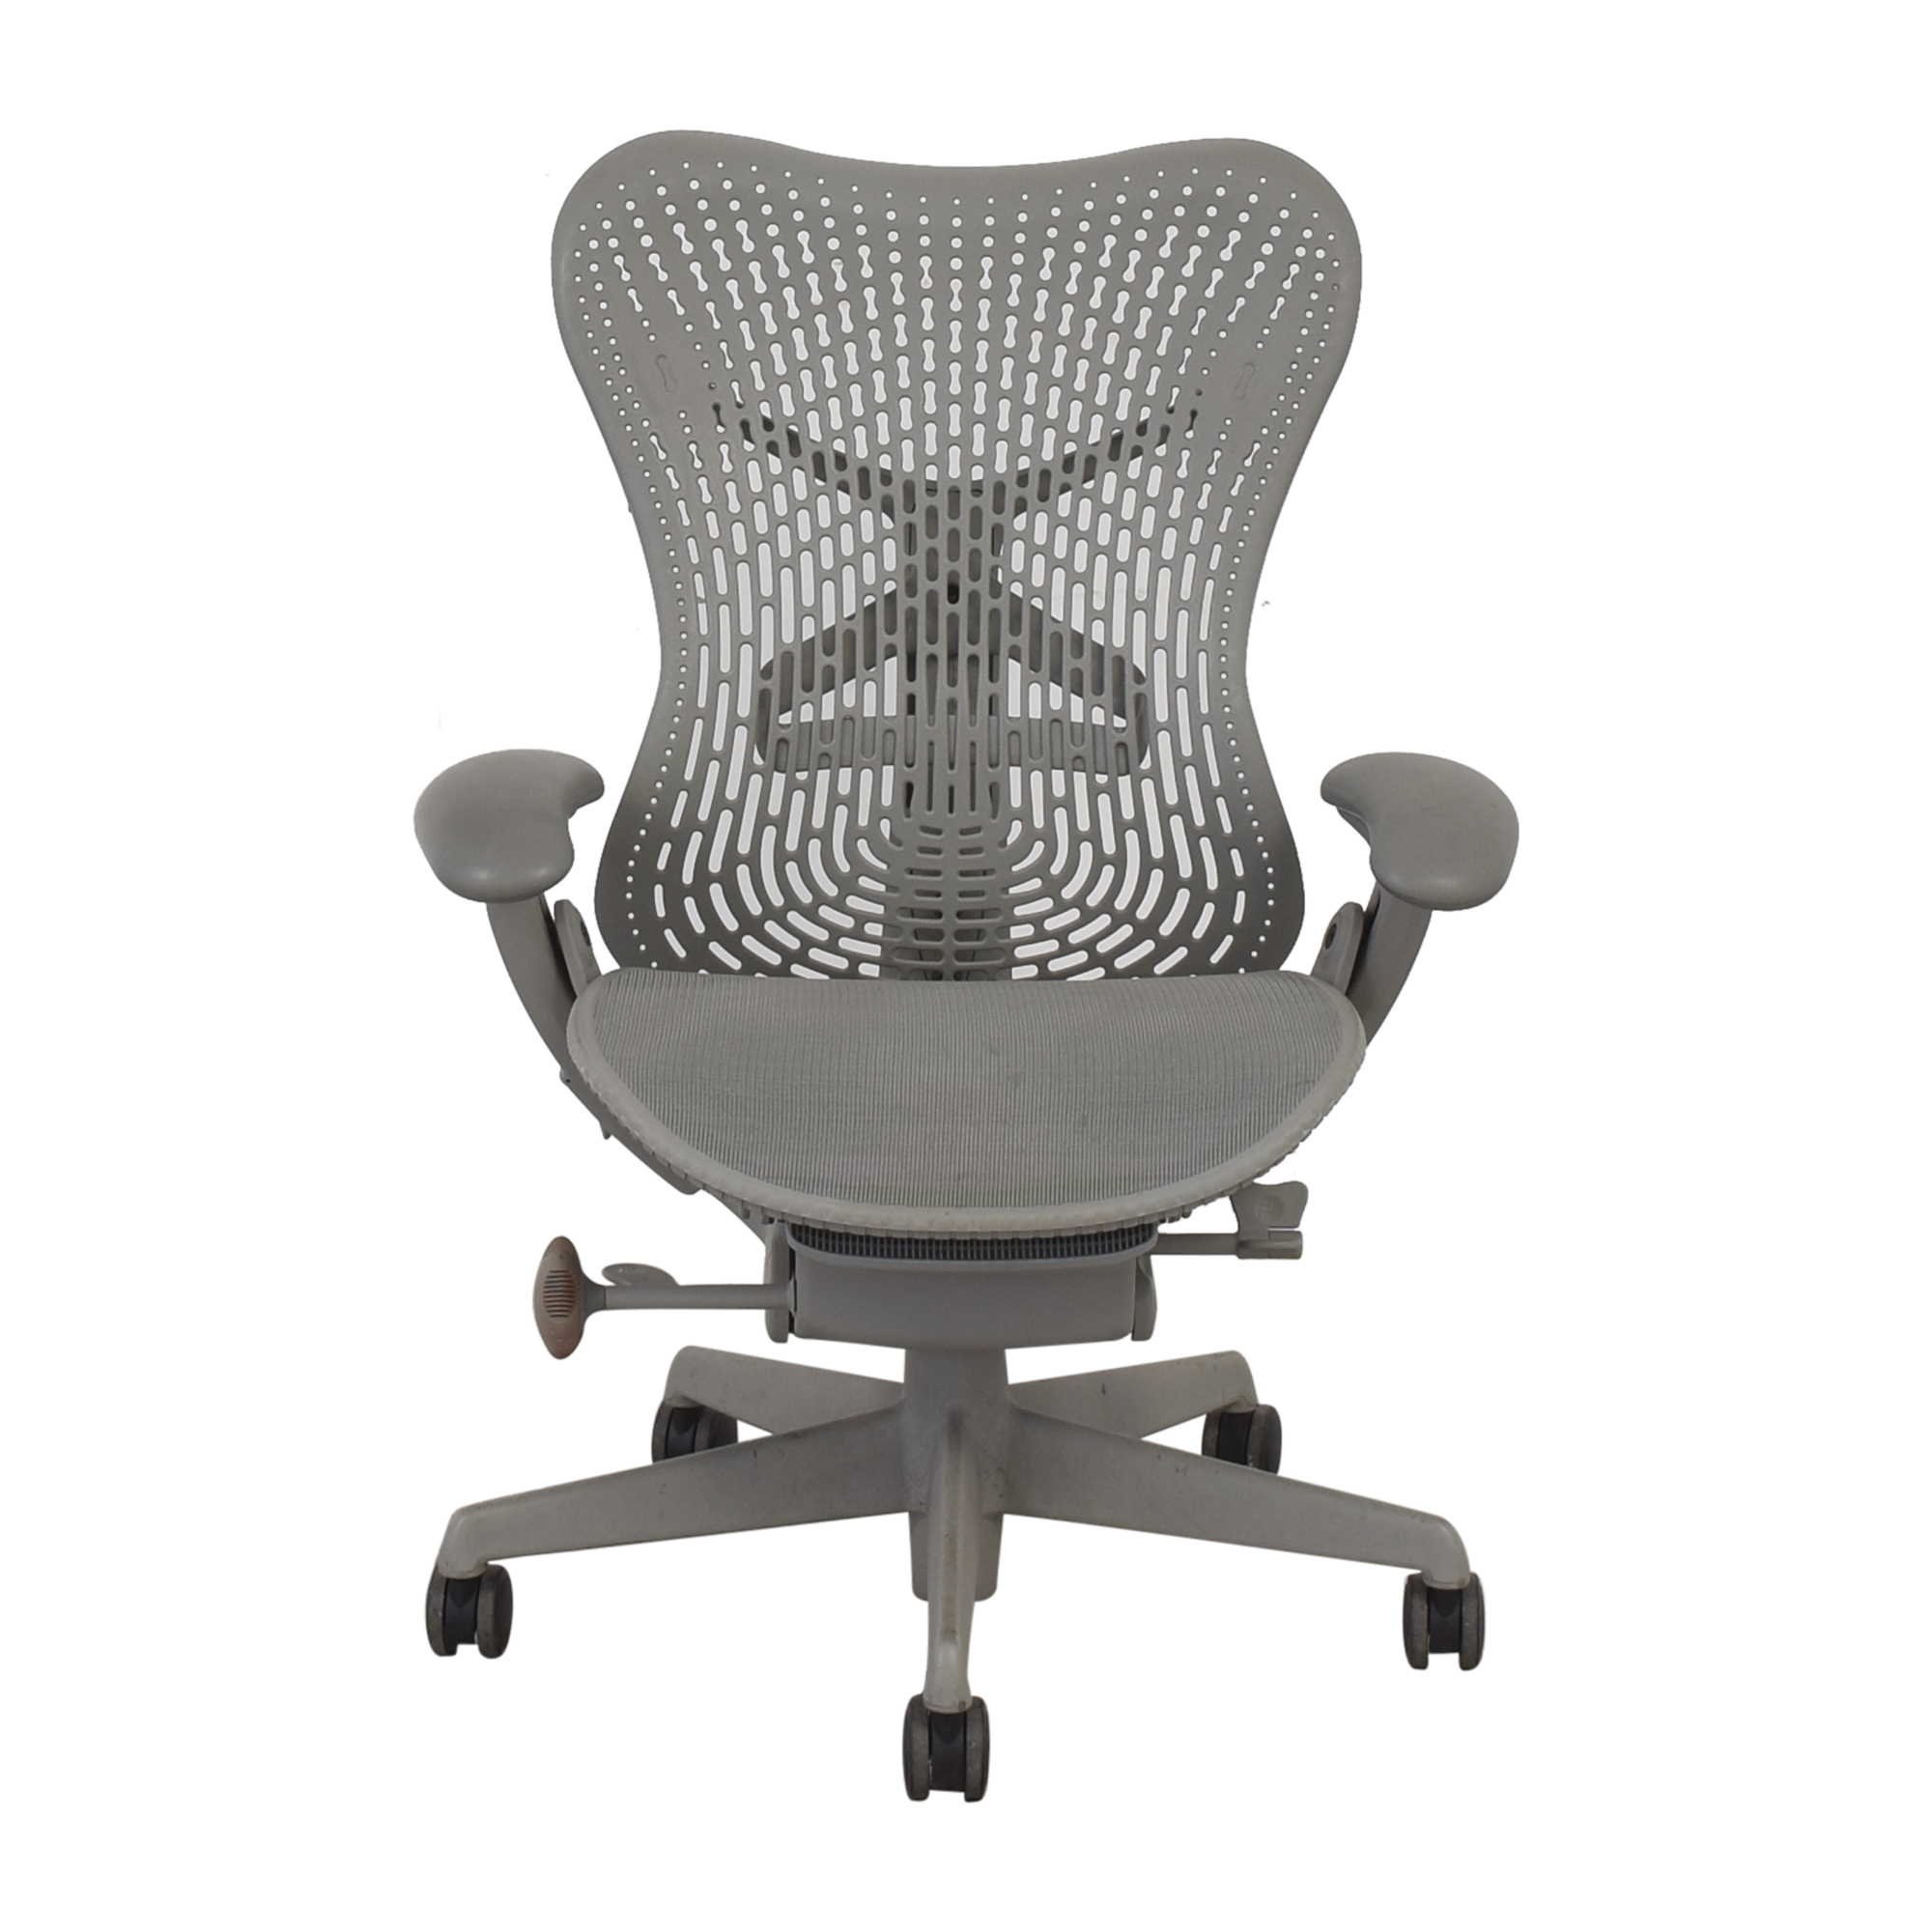 Herman Miller Herman Miller Mirra Chair second hand